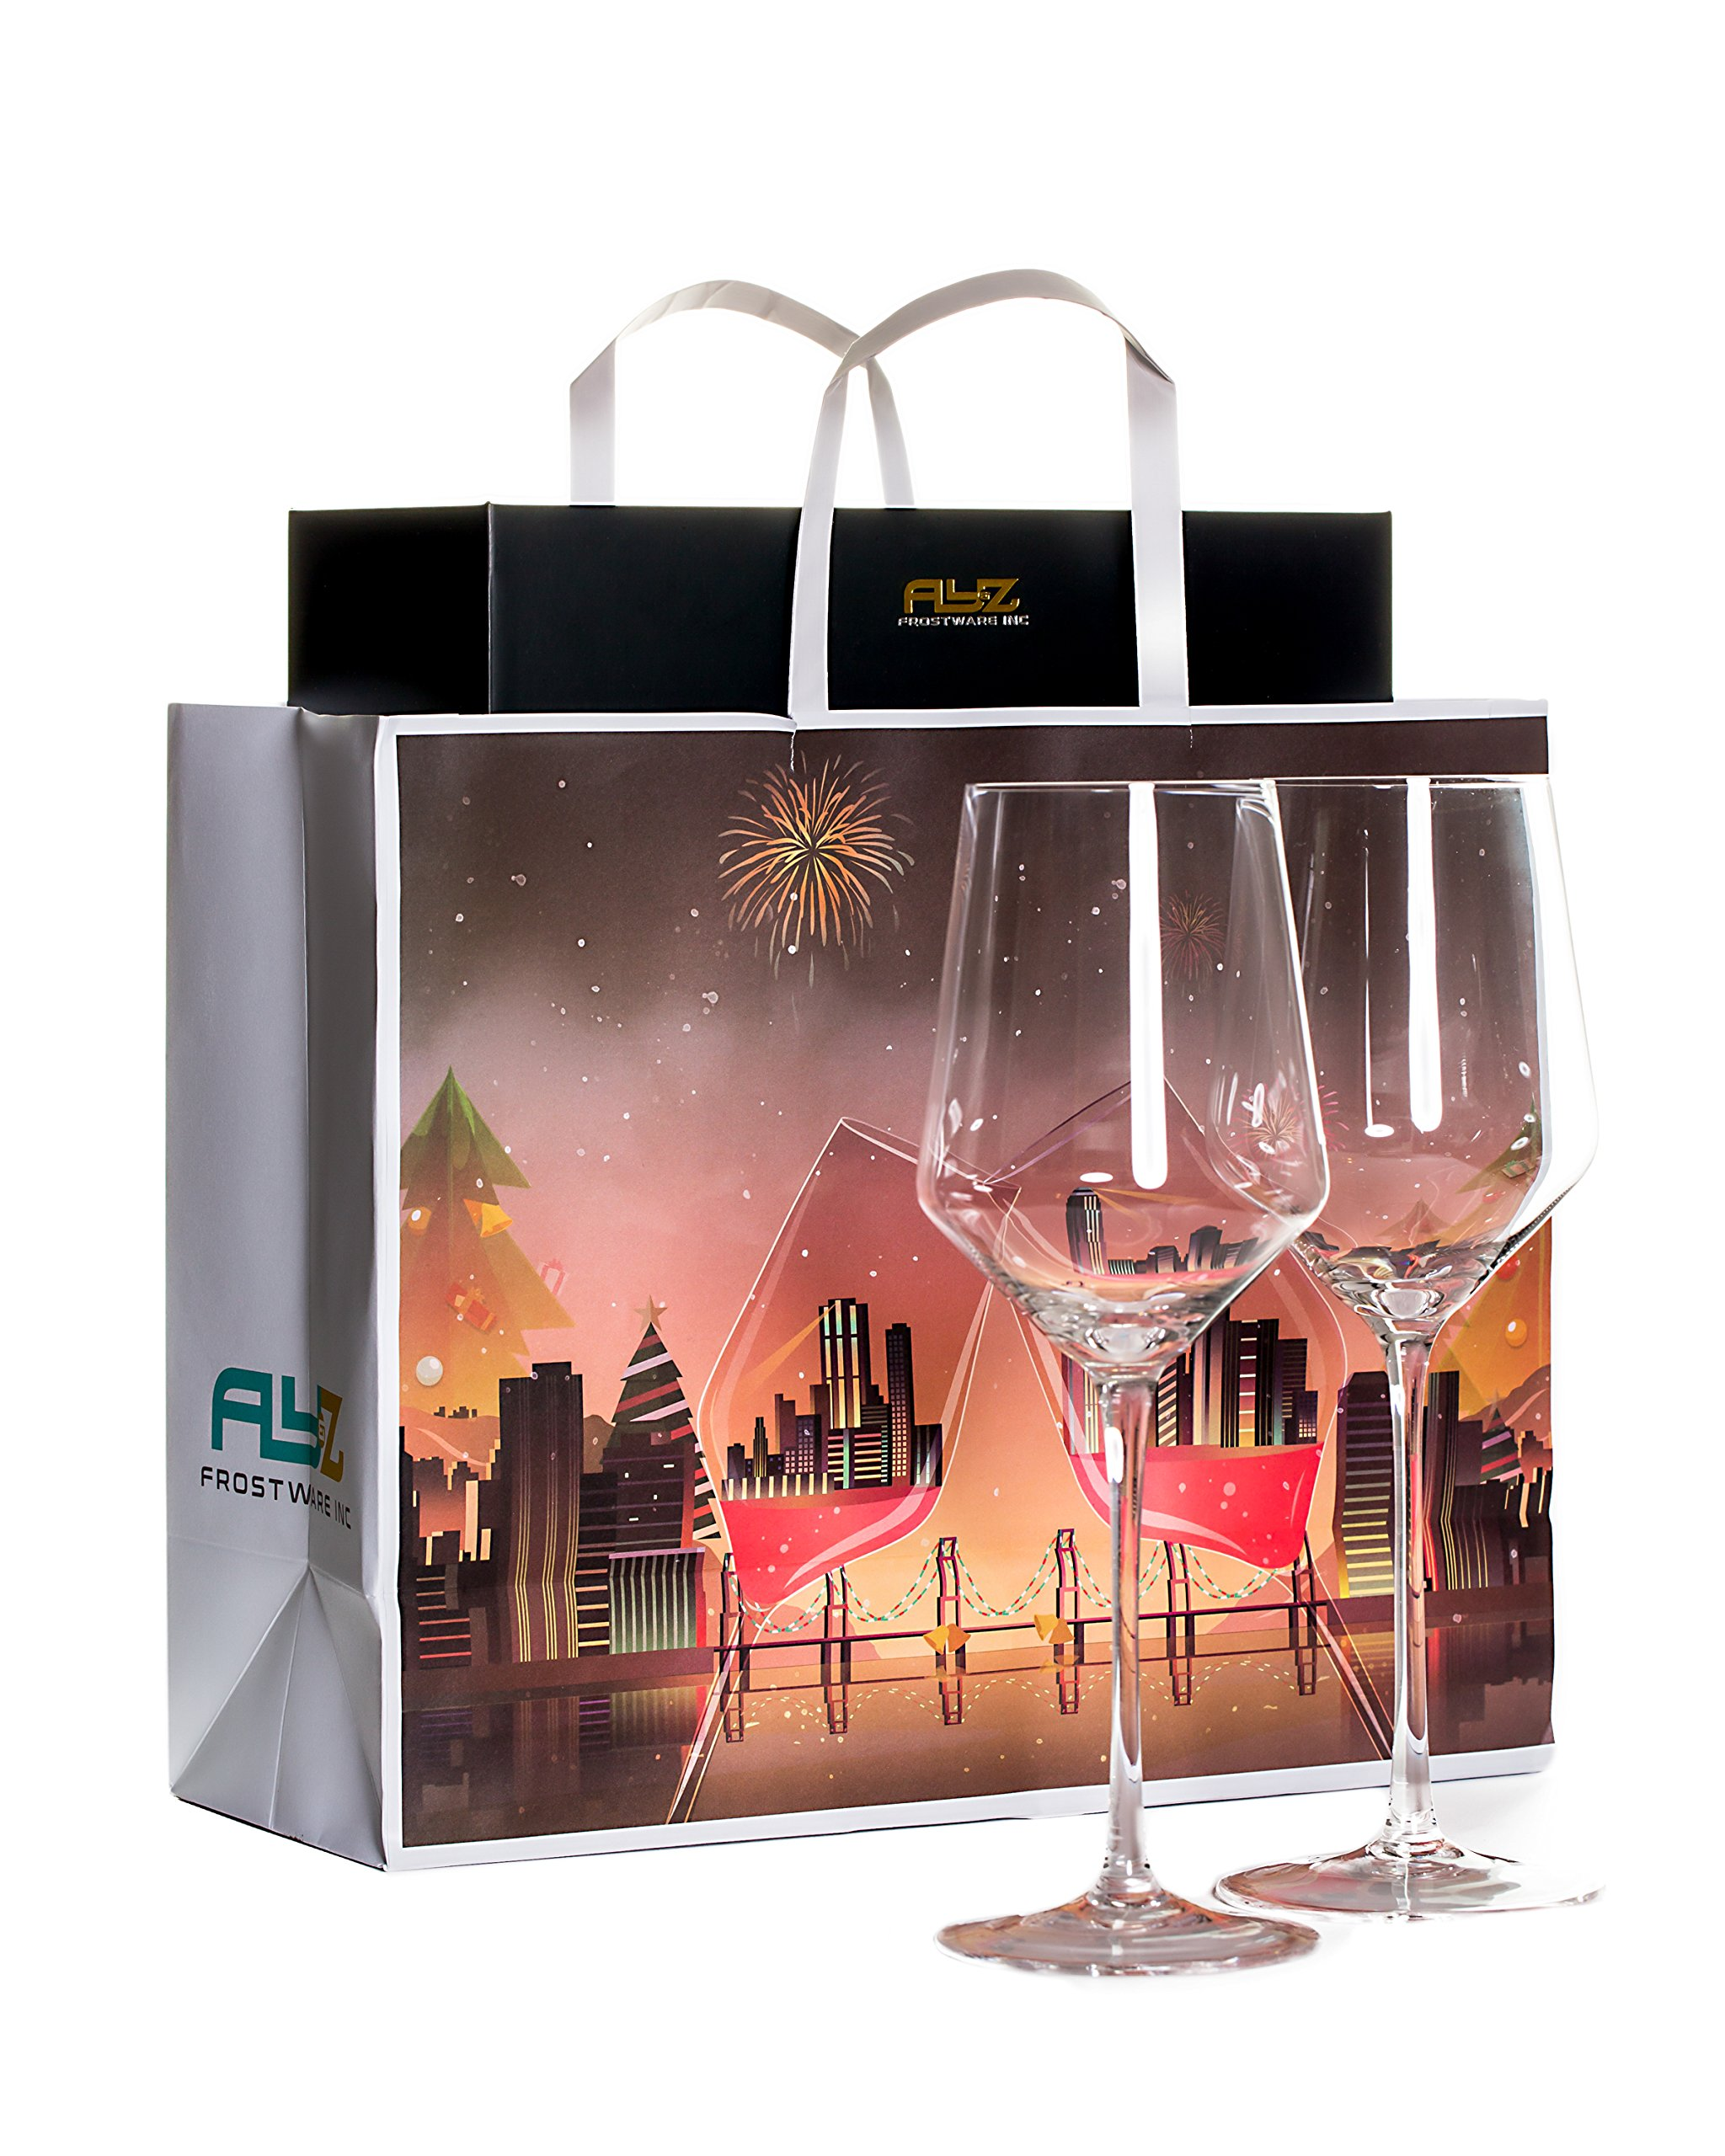 Merry Crystal- Set of 2 Clear Glass Drinking Cups - 17oz Restaurant Style Stemware - Elegant Box by Award Winning Designer with Special Xmas Bag- Unleaded - Dishwasher Safe